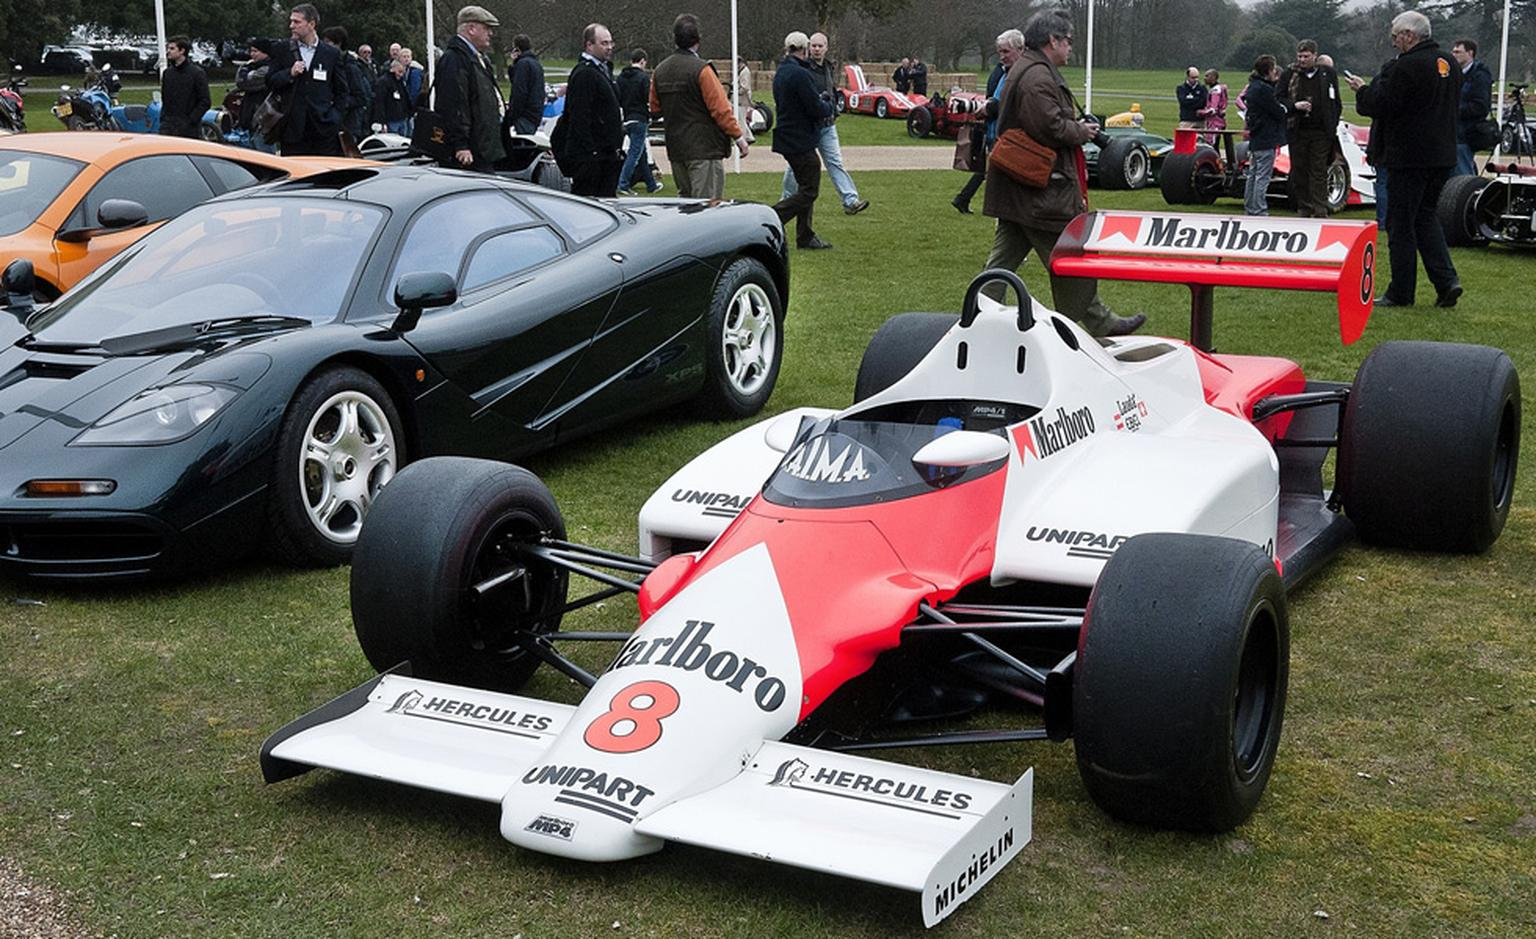 The McLaren Formula 1 car at Goodwood